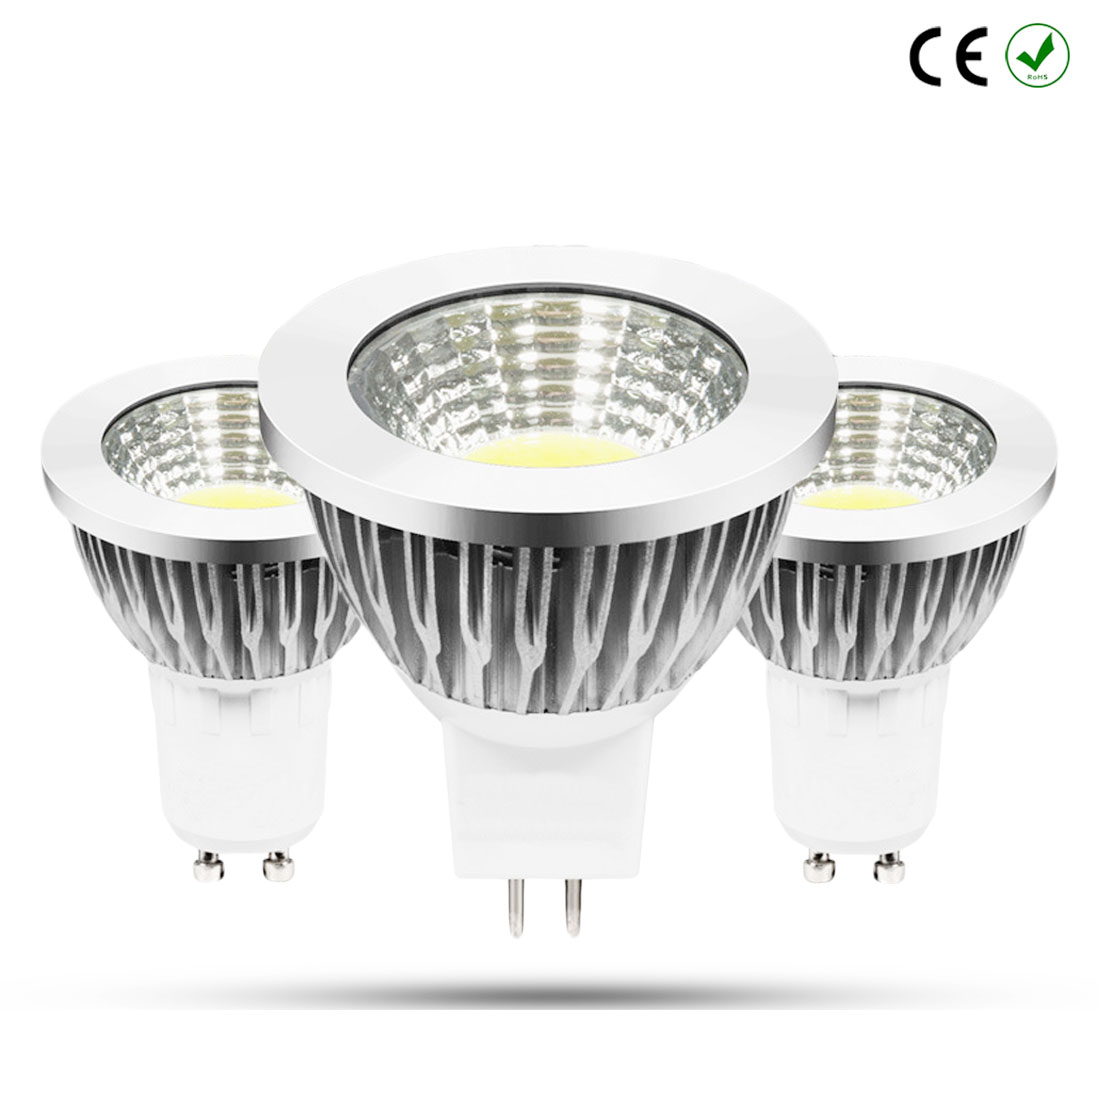 Spot Light LED Bulb Led 3W 5W 7W 220V 110V 12V GU10 E27 COB dimmable MR16 Warm White bulb replace energy saving lamp